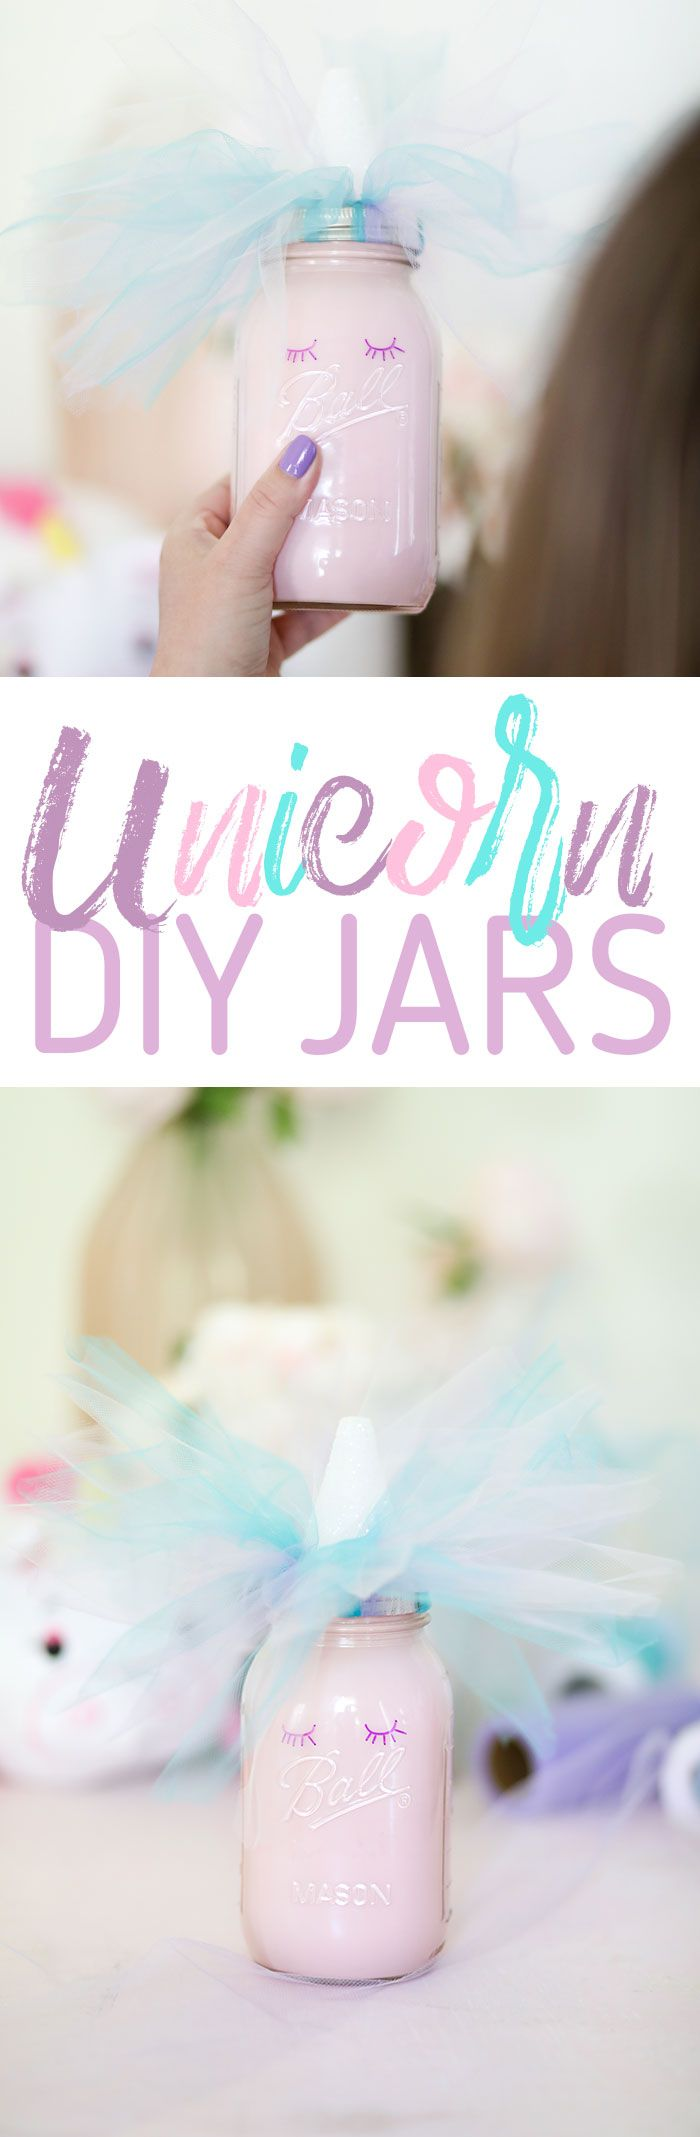 Unicorn DIY. Cute Mason Jar Unicorn. via @dawnchats